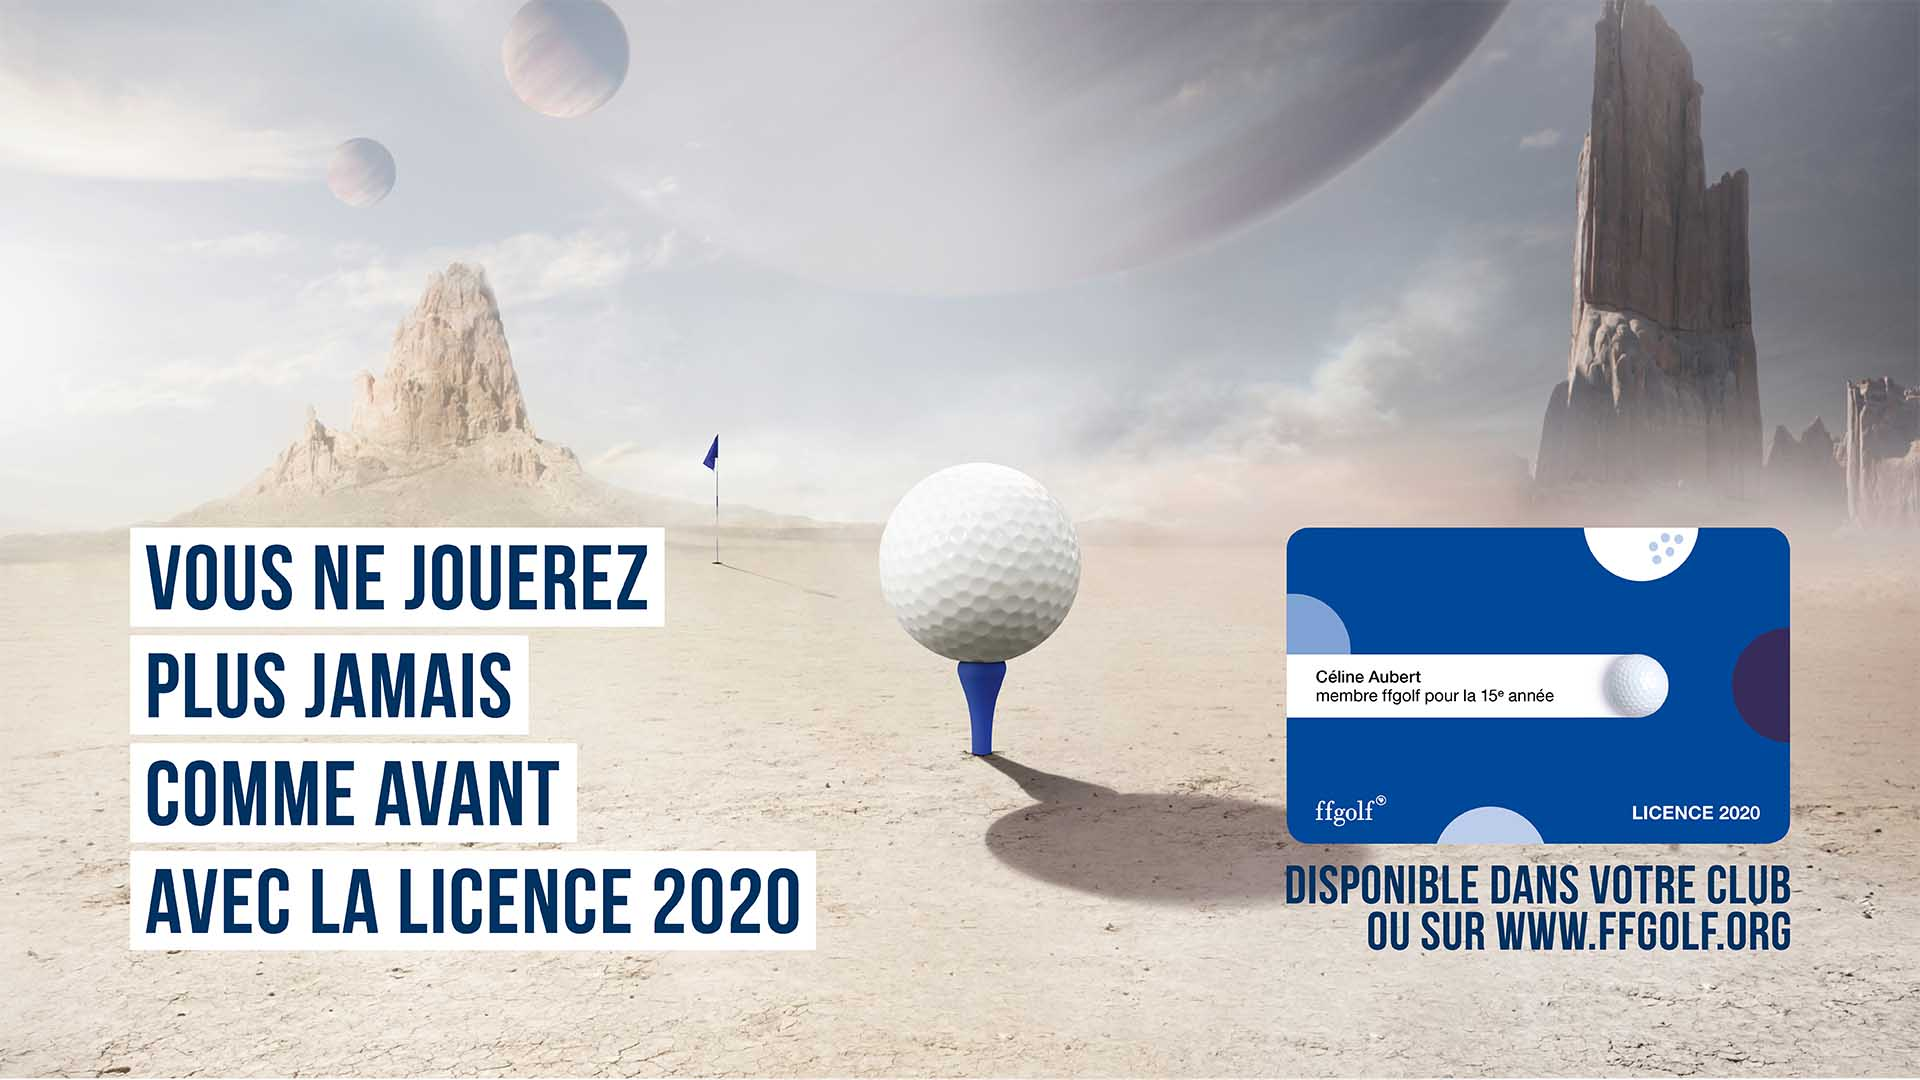 Nouvelle licence 2020